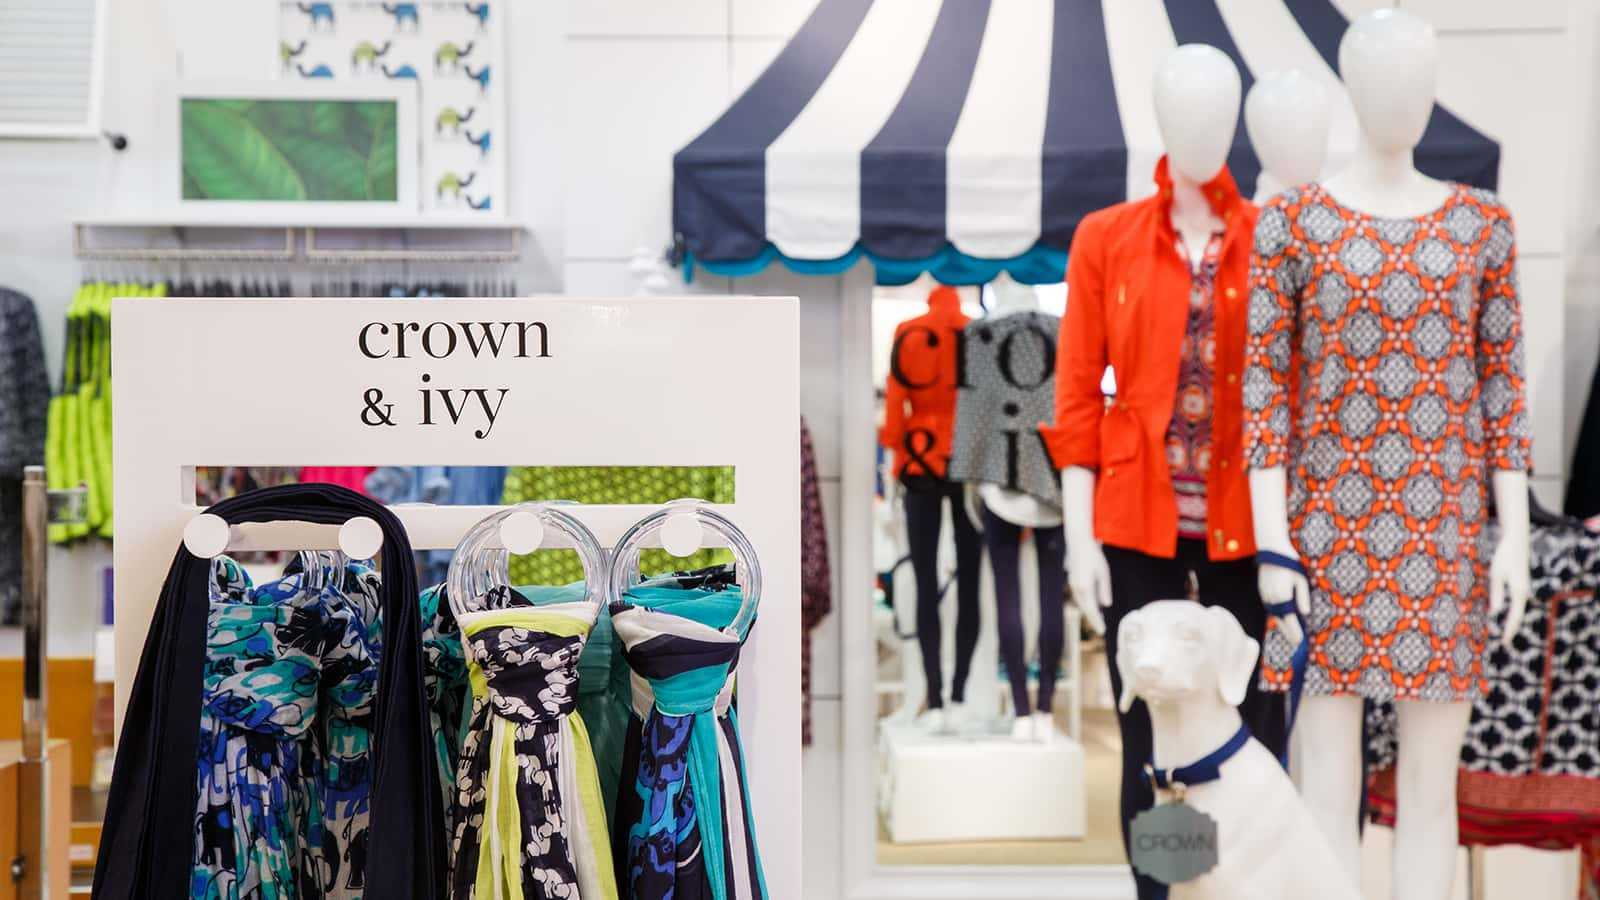 Branded fixture of the Crown & Ivy shop-in-shop 2016.